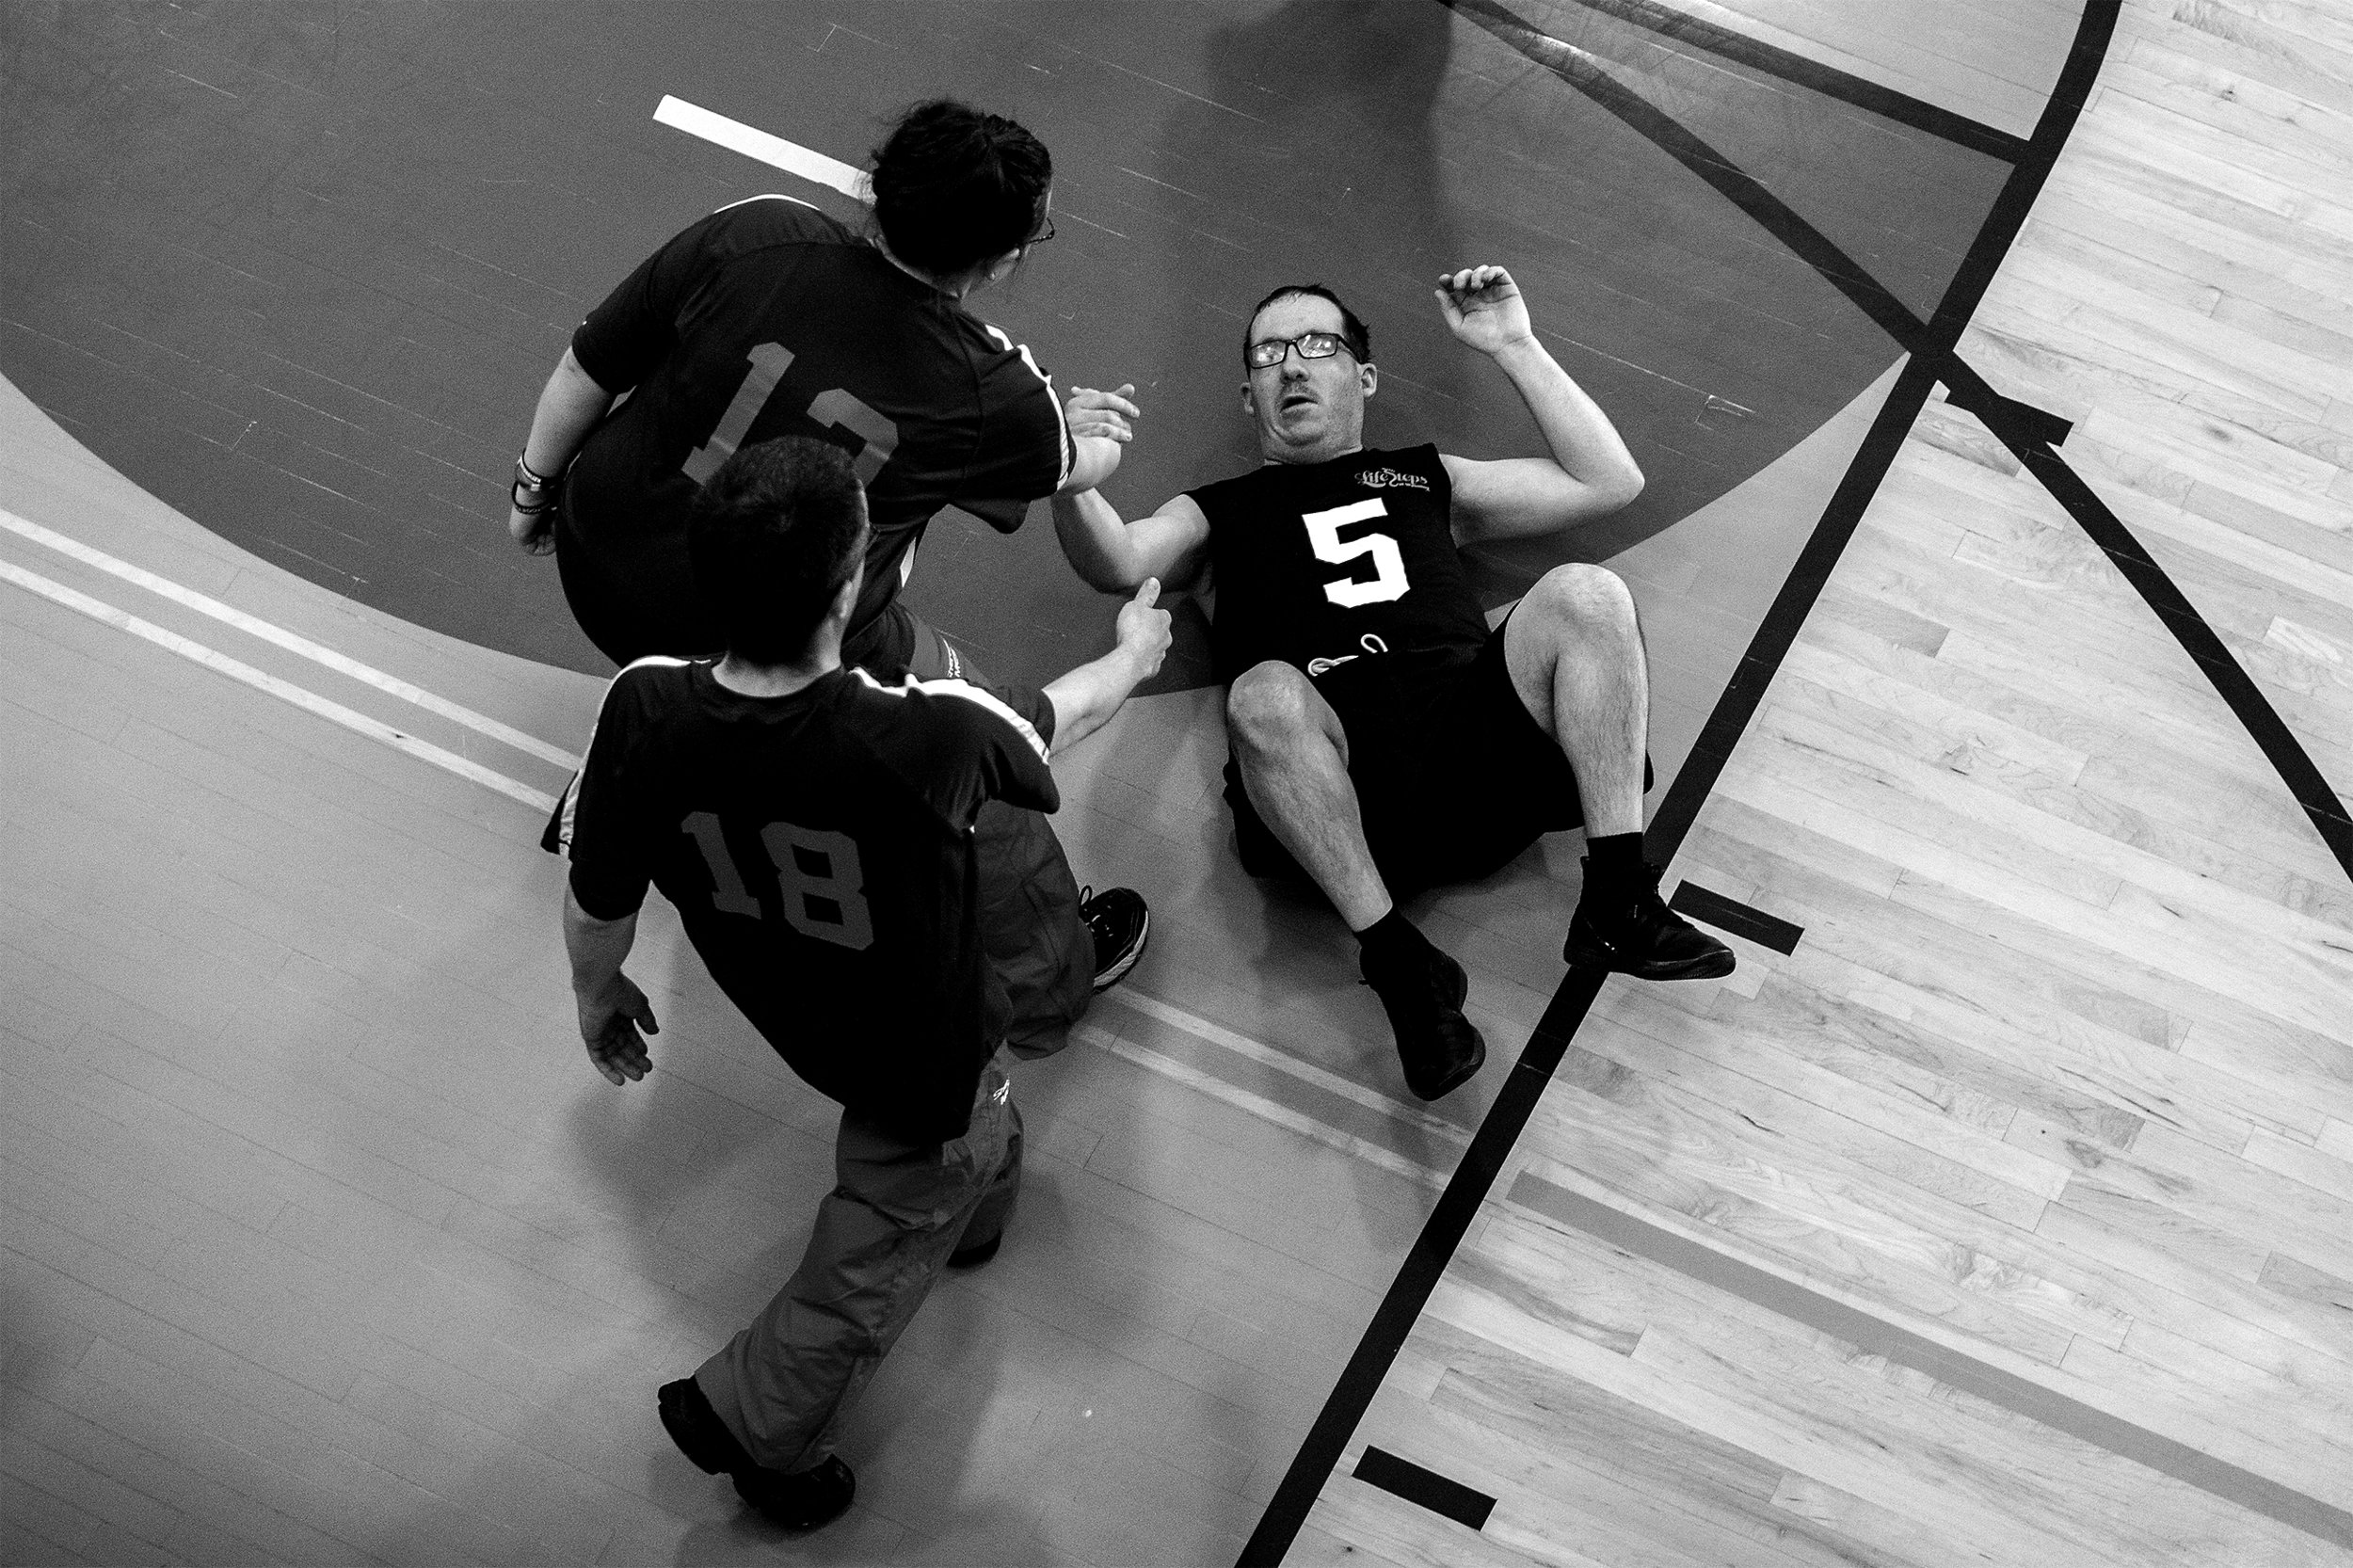 Billy Buckey is helped to his feet by rival players Amber Trieber and Jackson Ventling, (18) during the basketball competition of the Special Olympics Area Games on Thursday, April 11, 2019. For many of the athletes competing the family and camaraderie aspect is far more important than winning.